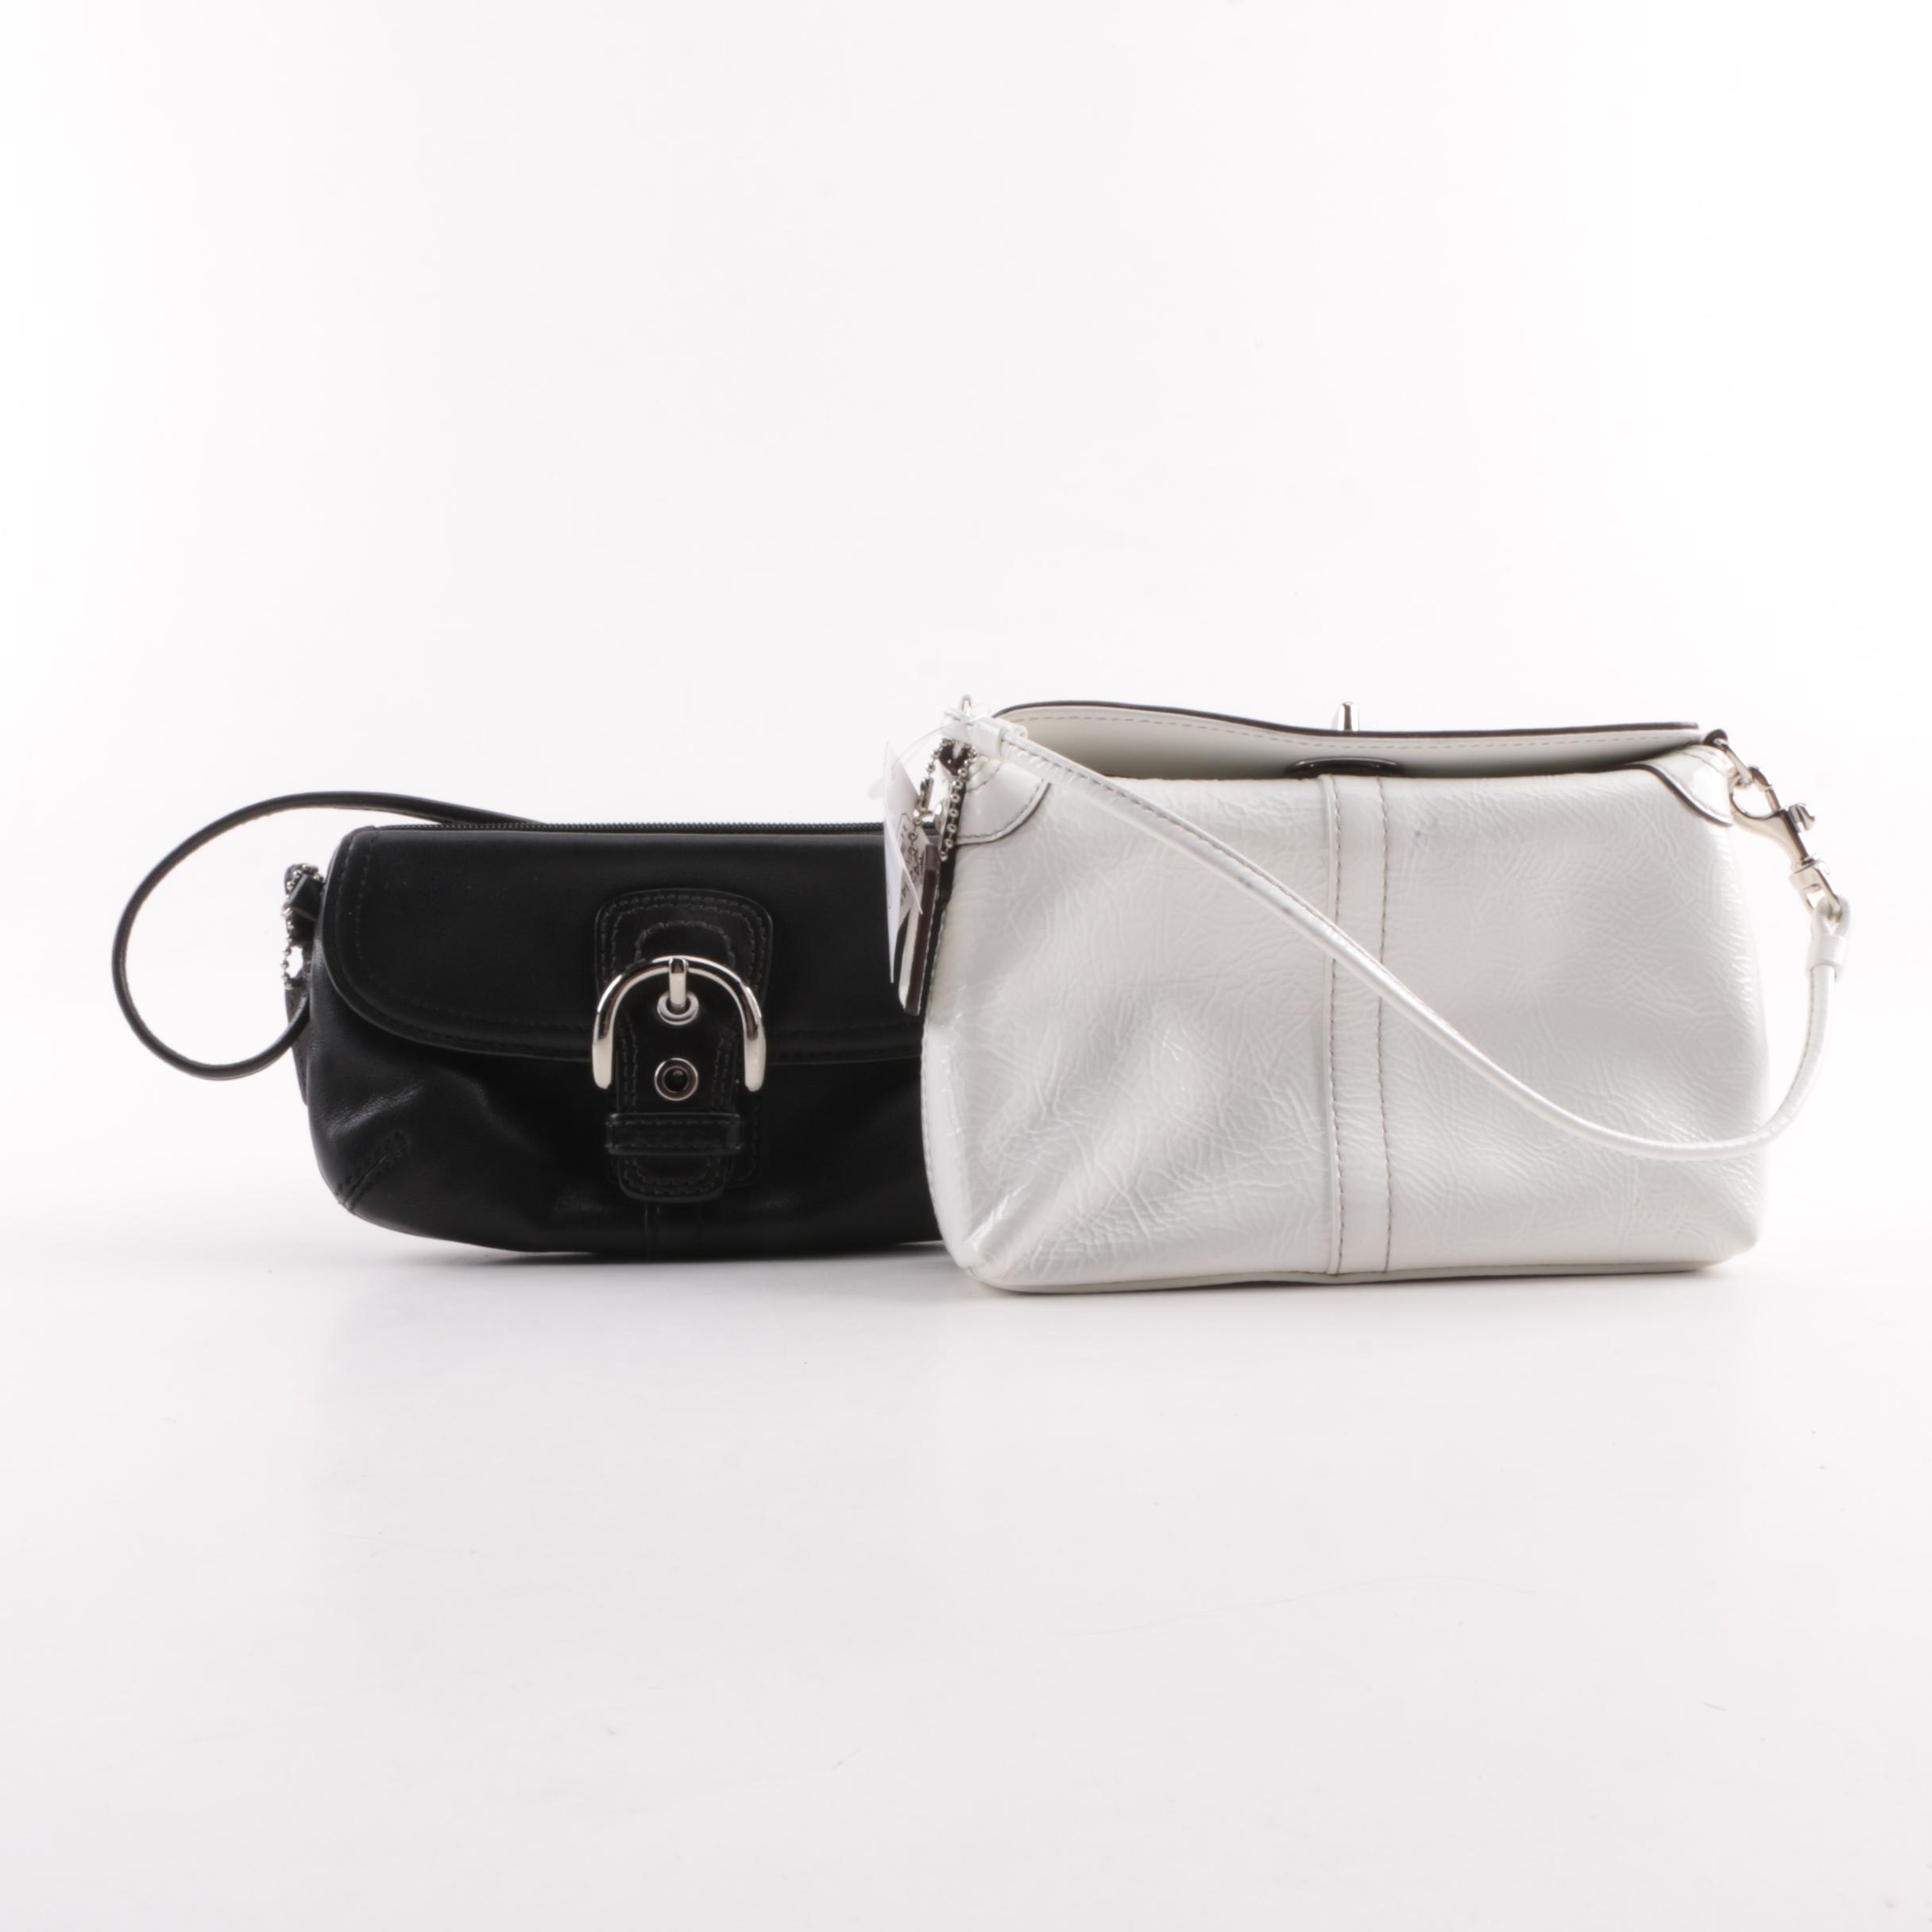 Coach Black Leather and White Patent Leather Wristlets